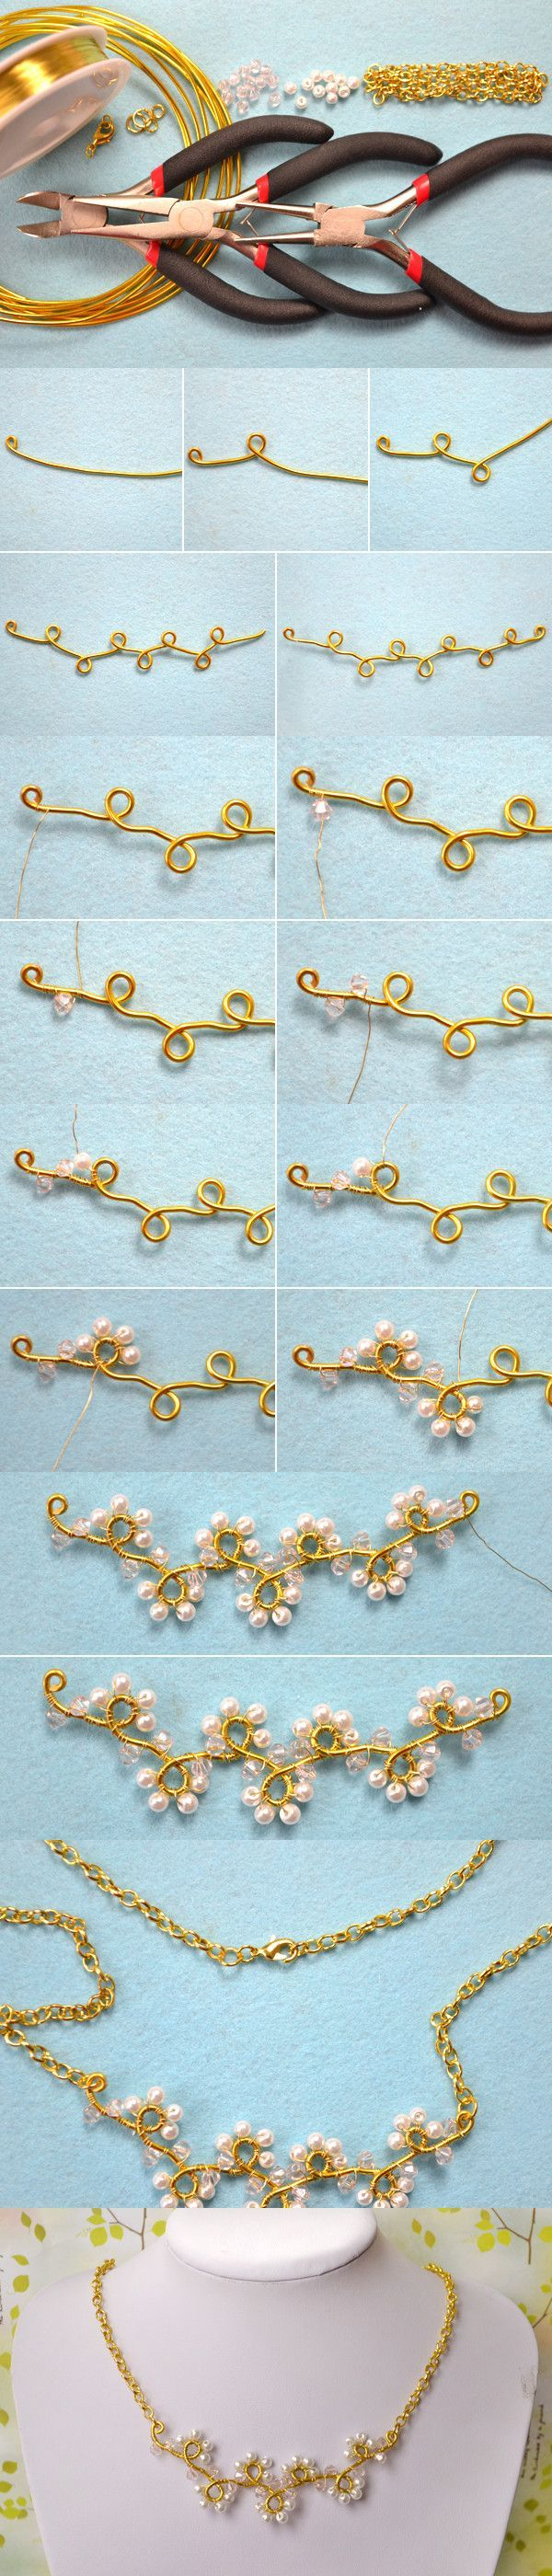 nice DIY Bijoux - Spring Jewelry Design on How to Make a Wire Flower Vine Necklace with Beads from...